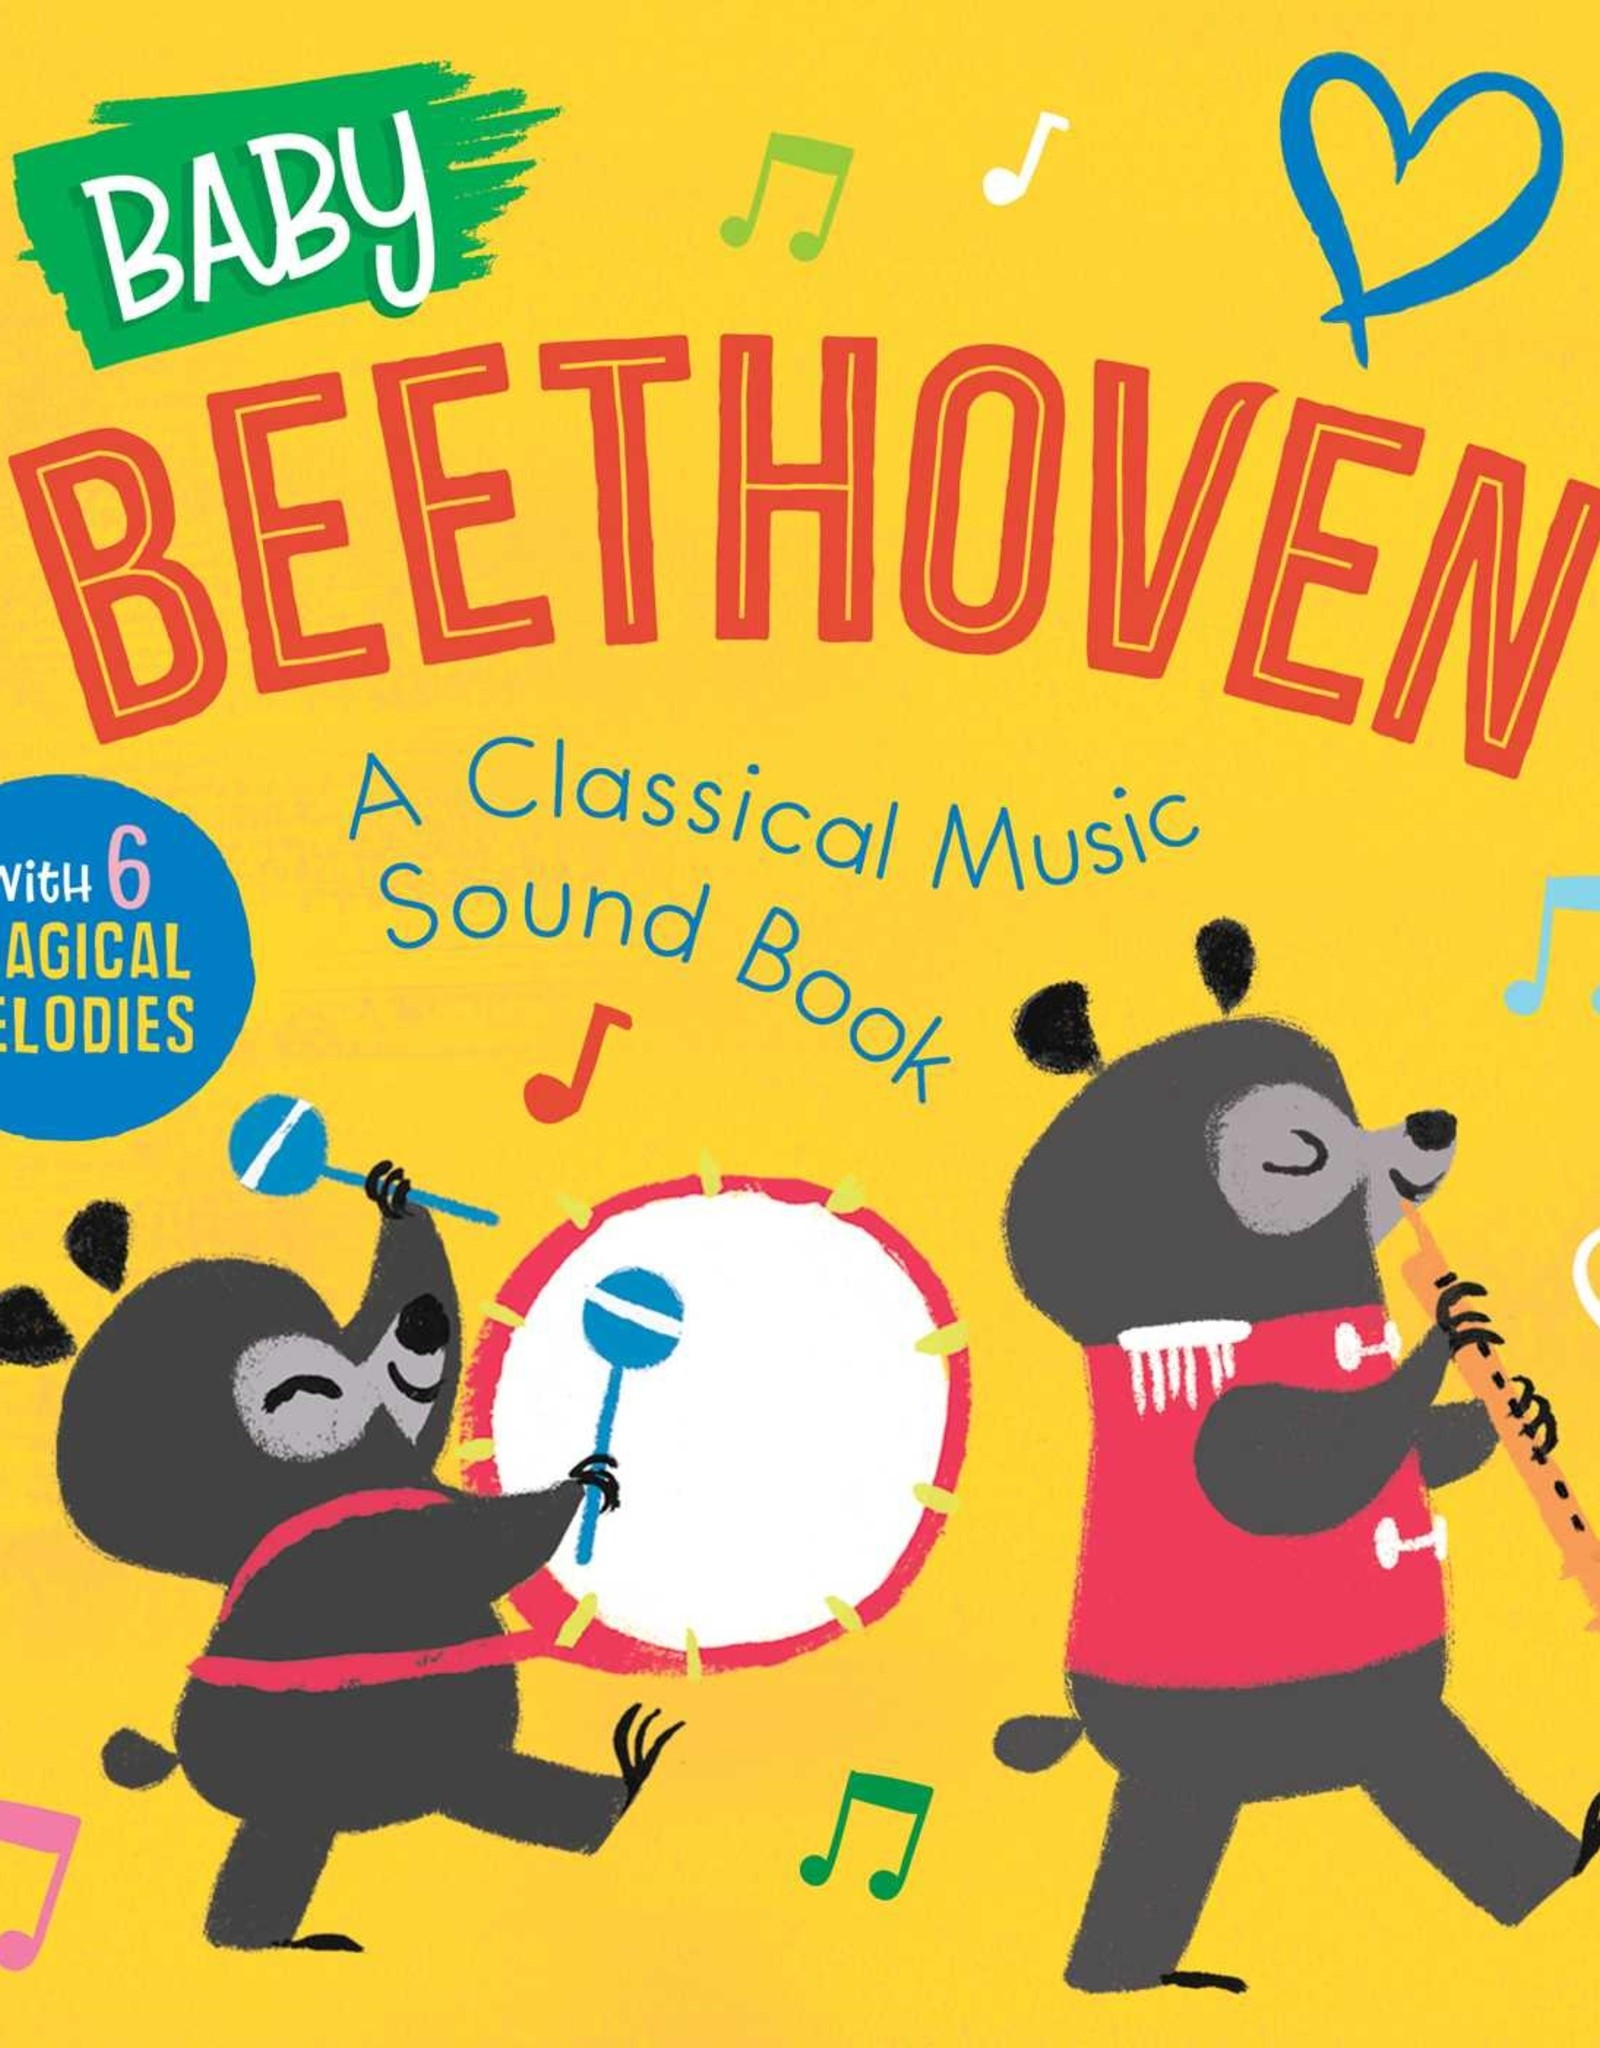 Simon & Schuster Baby Beethoven: A Classical Music Sound Book